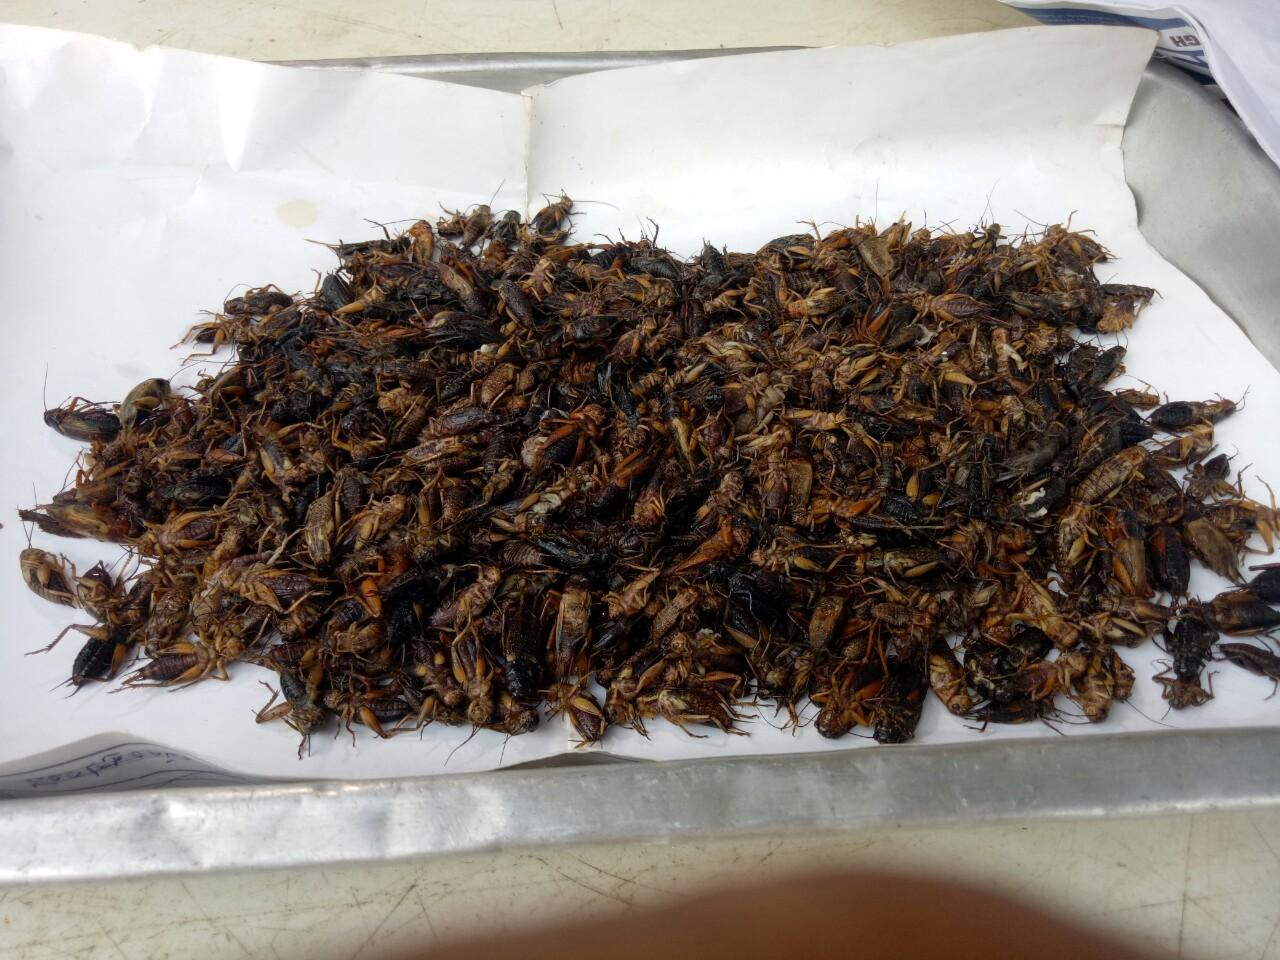 Dead crickets are about to be put in plastic bags to be sold to customers.(Photos by Phitsanu Thepthong)